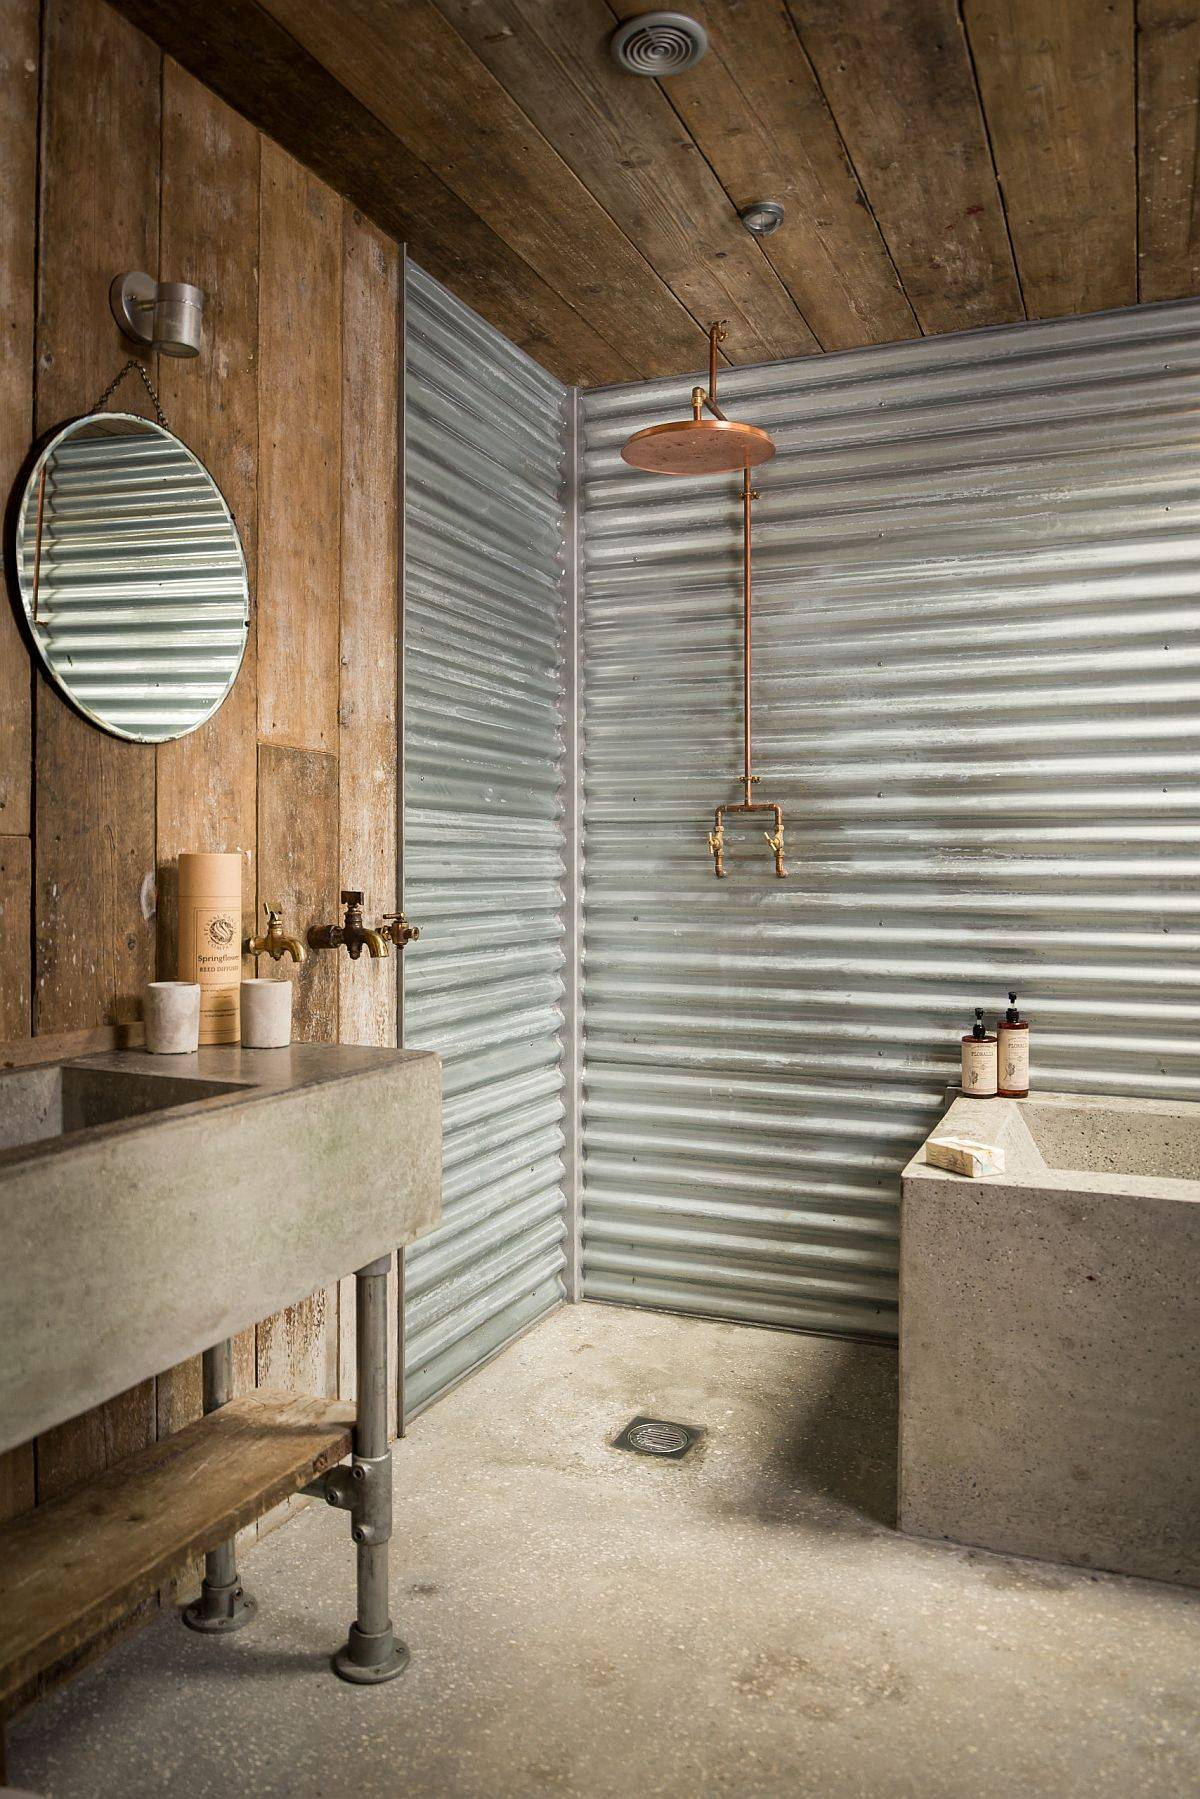 Weathered-wood-and-metal-sheets-add-an-entirely-different-dynamic-to-this-rustic-farmhouse-bathroom-35138